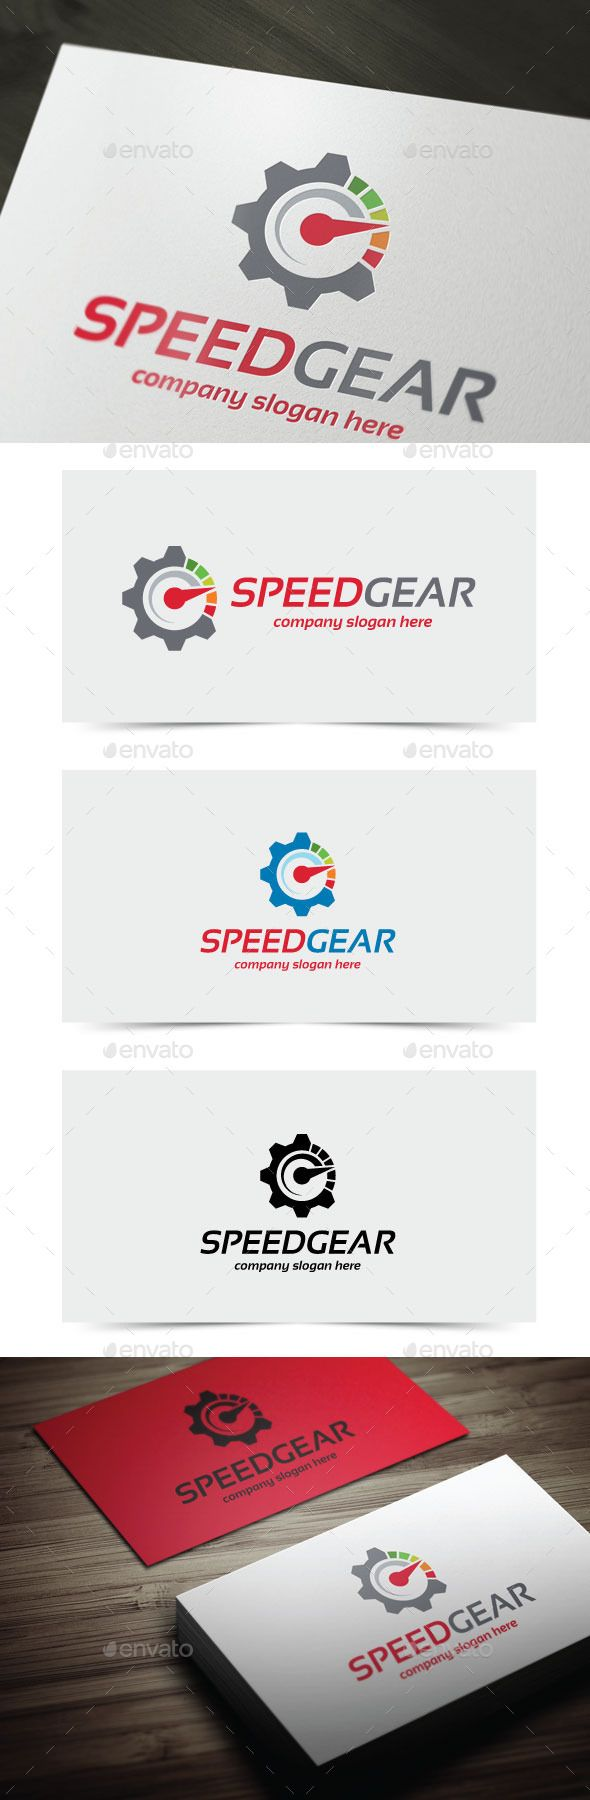 Below are two different file formats of the superman logo in a beveled - Speed Gear